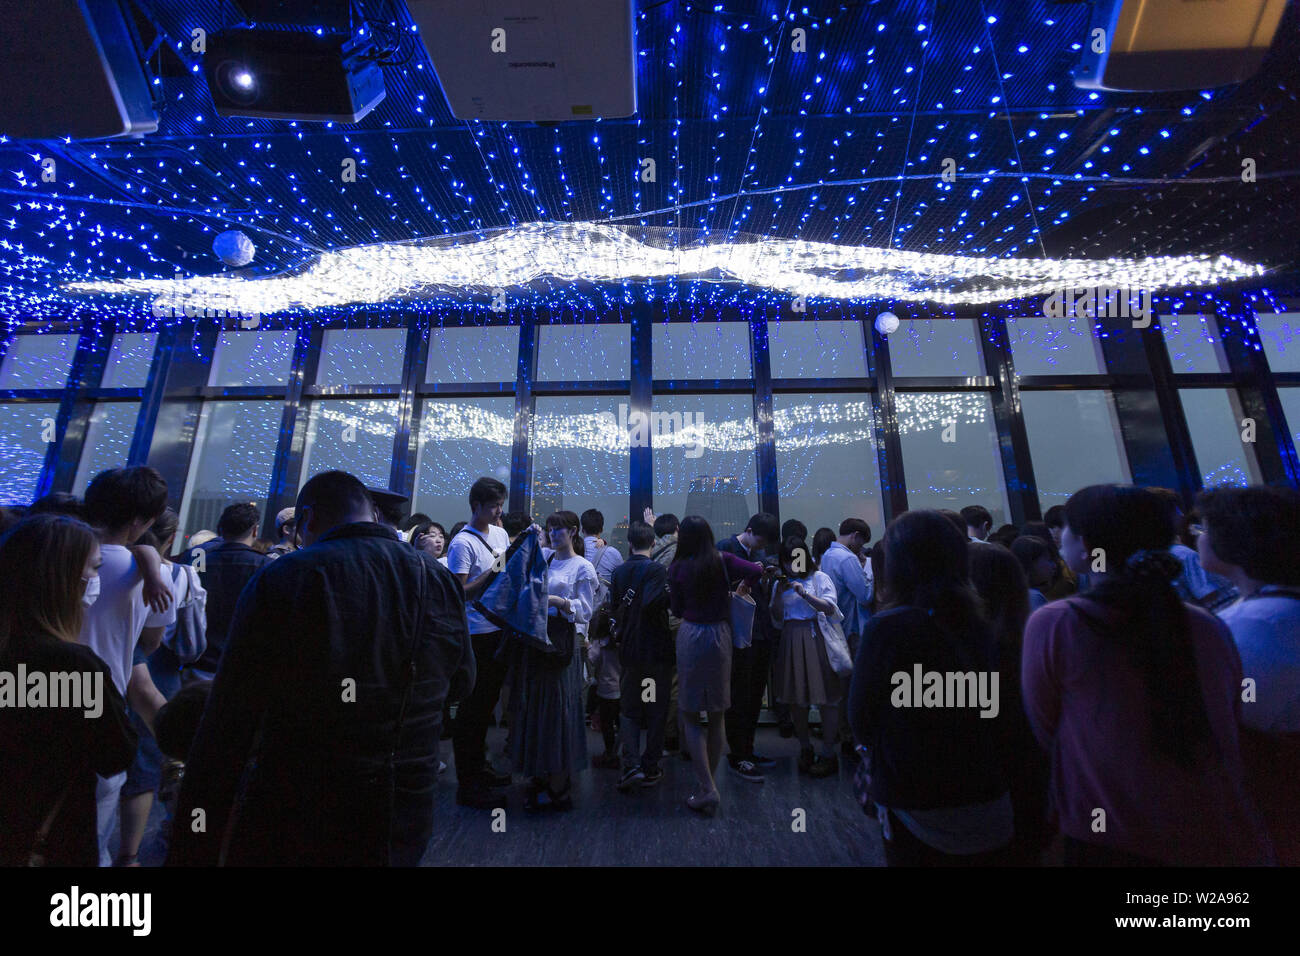 Tokyo, Japan. 7th July, 2019. Visitors contemplate the LED lights simulating the Milky Way in commemoration of the festival of Tanabata at Tokyo Tower. Every year, people write their wishes on colorful papers (Tanzaku) to hang it on bamboo branches as a tradition of the Tanabata Festival. The annual celebration commemorates the legend of two lovers separated by the Milky Way who only meet once a year on the seventh day of the seventh month. The festival has been held since the Edo era. Credit: Rodrigo Reyes Marin/ZUMA Wire/Alamy Live News - Stock Image